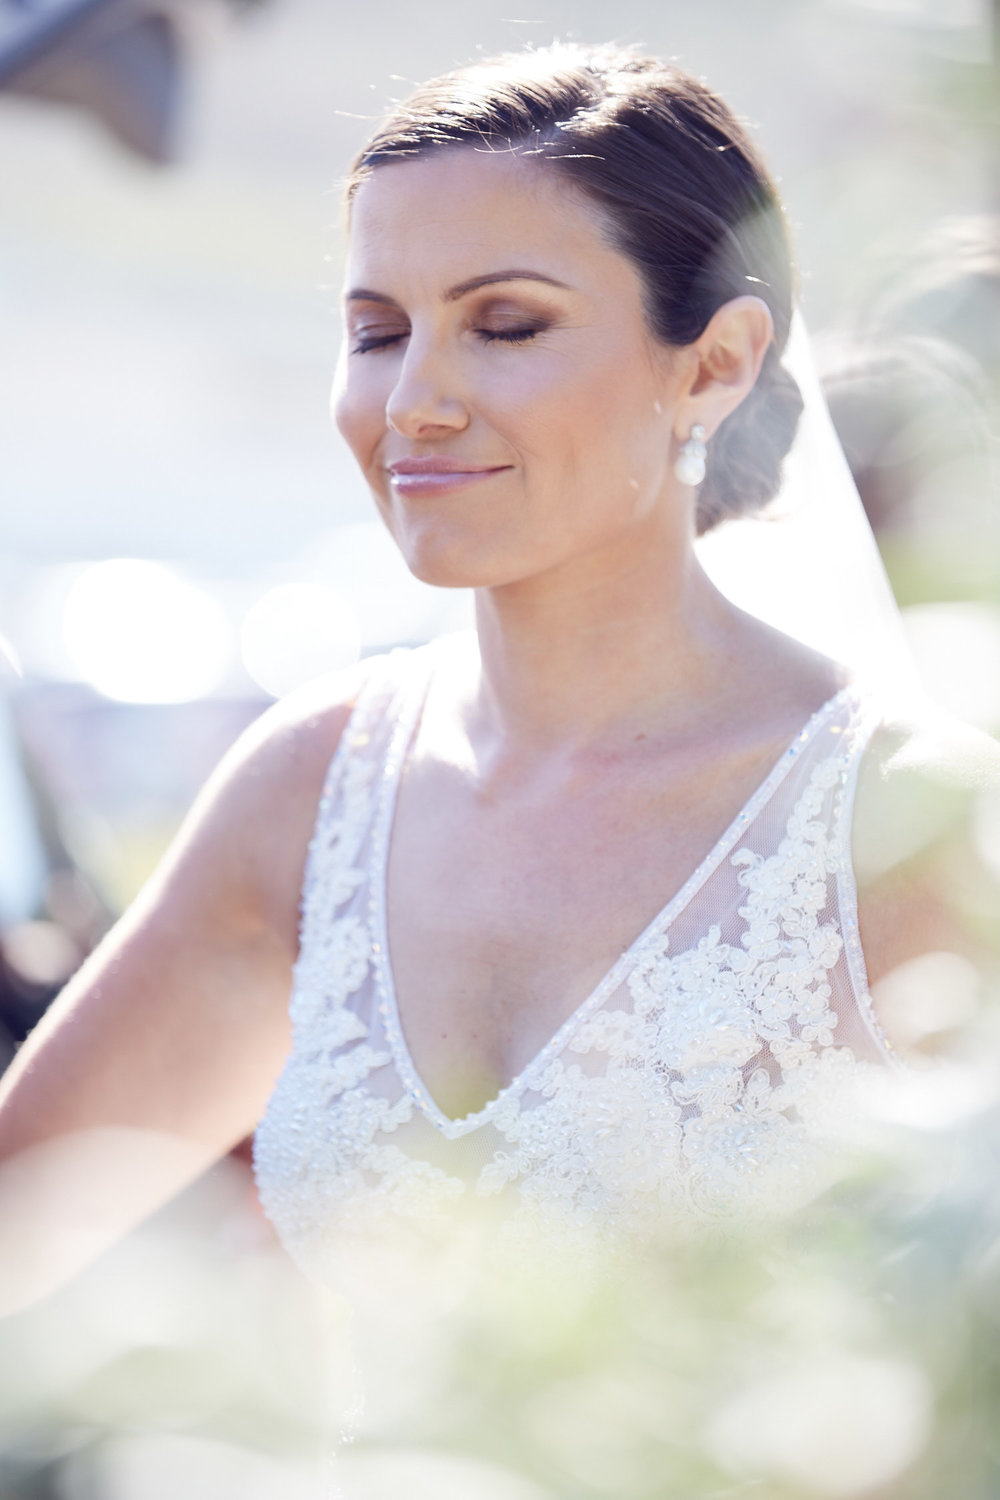 Nat + Bryce Sorrento wedding by Lost In Love Photography